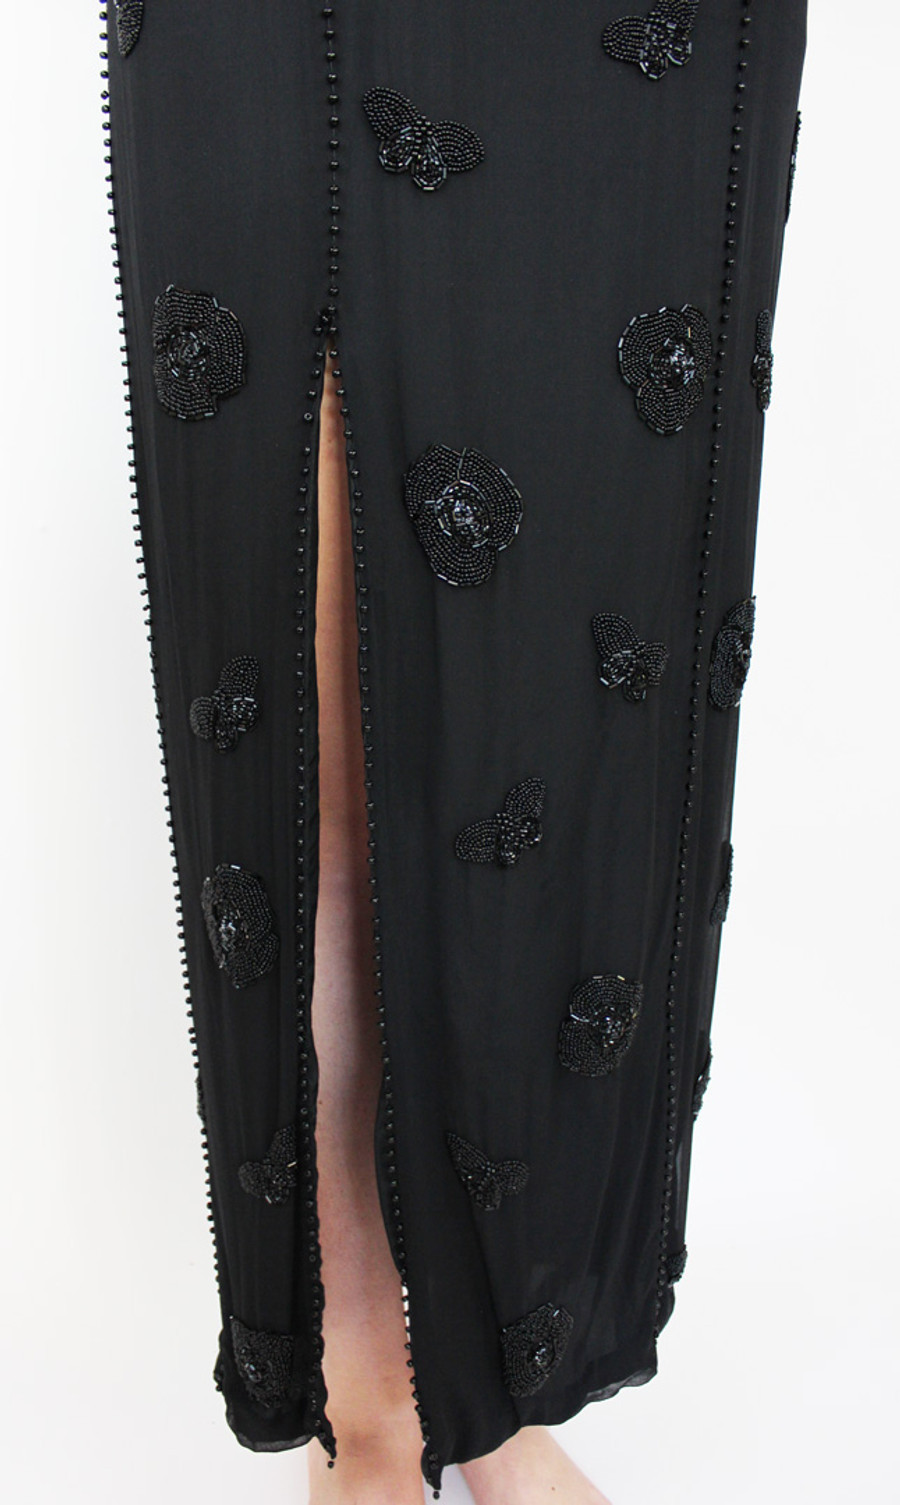 Front of dress with slit edged in beads